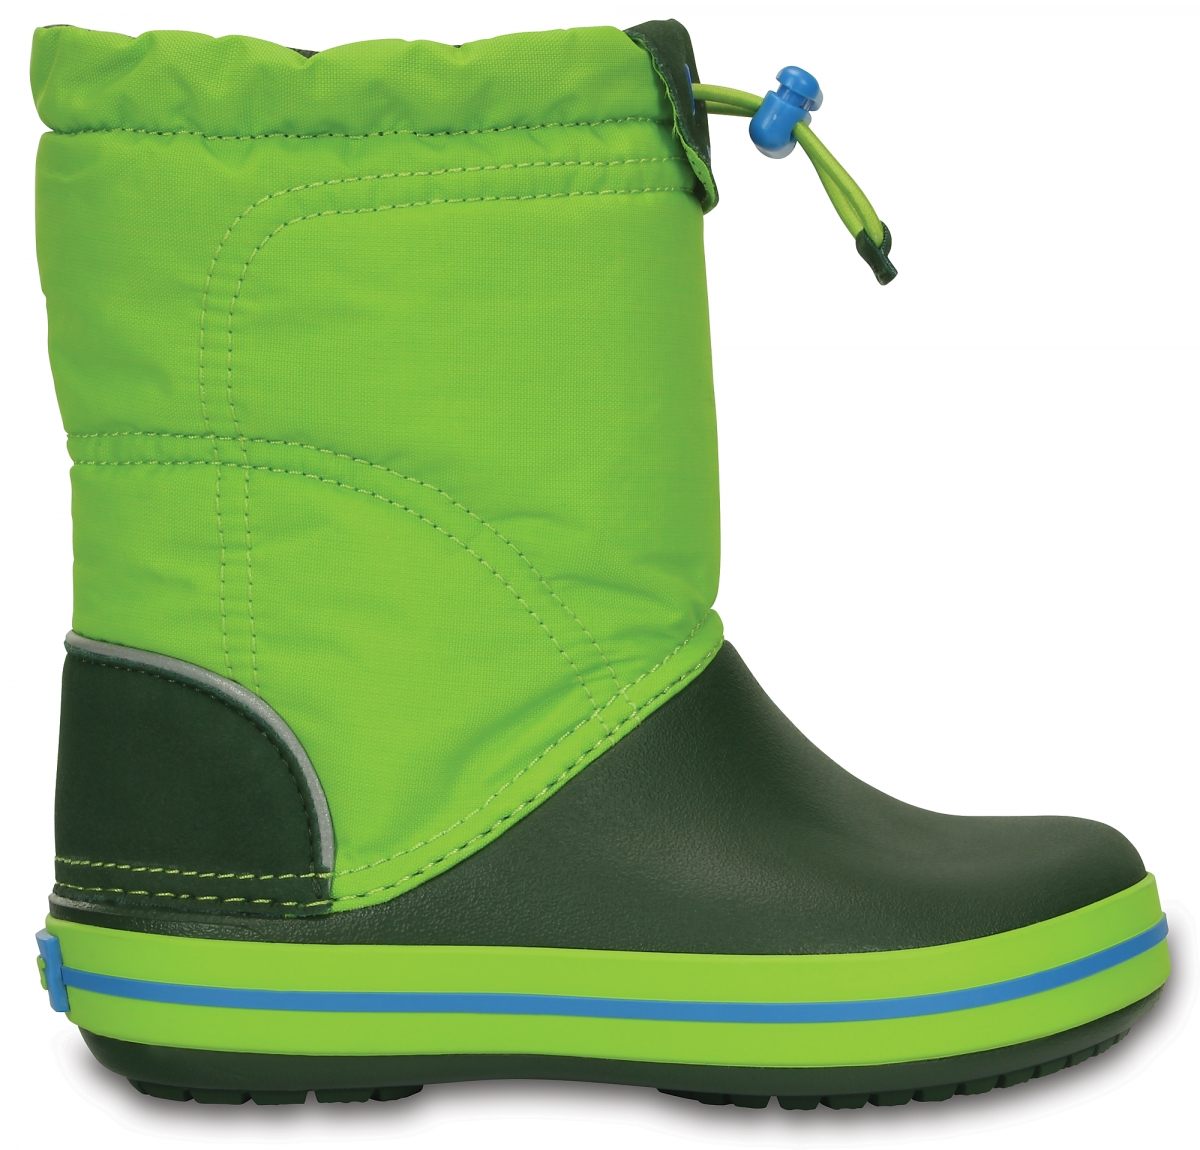 Crocs Crocband LodgePoint Boot Kids Lime/Forest Green, C10 (27-28)